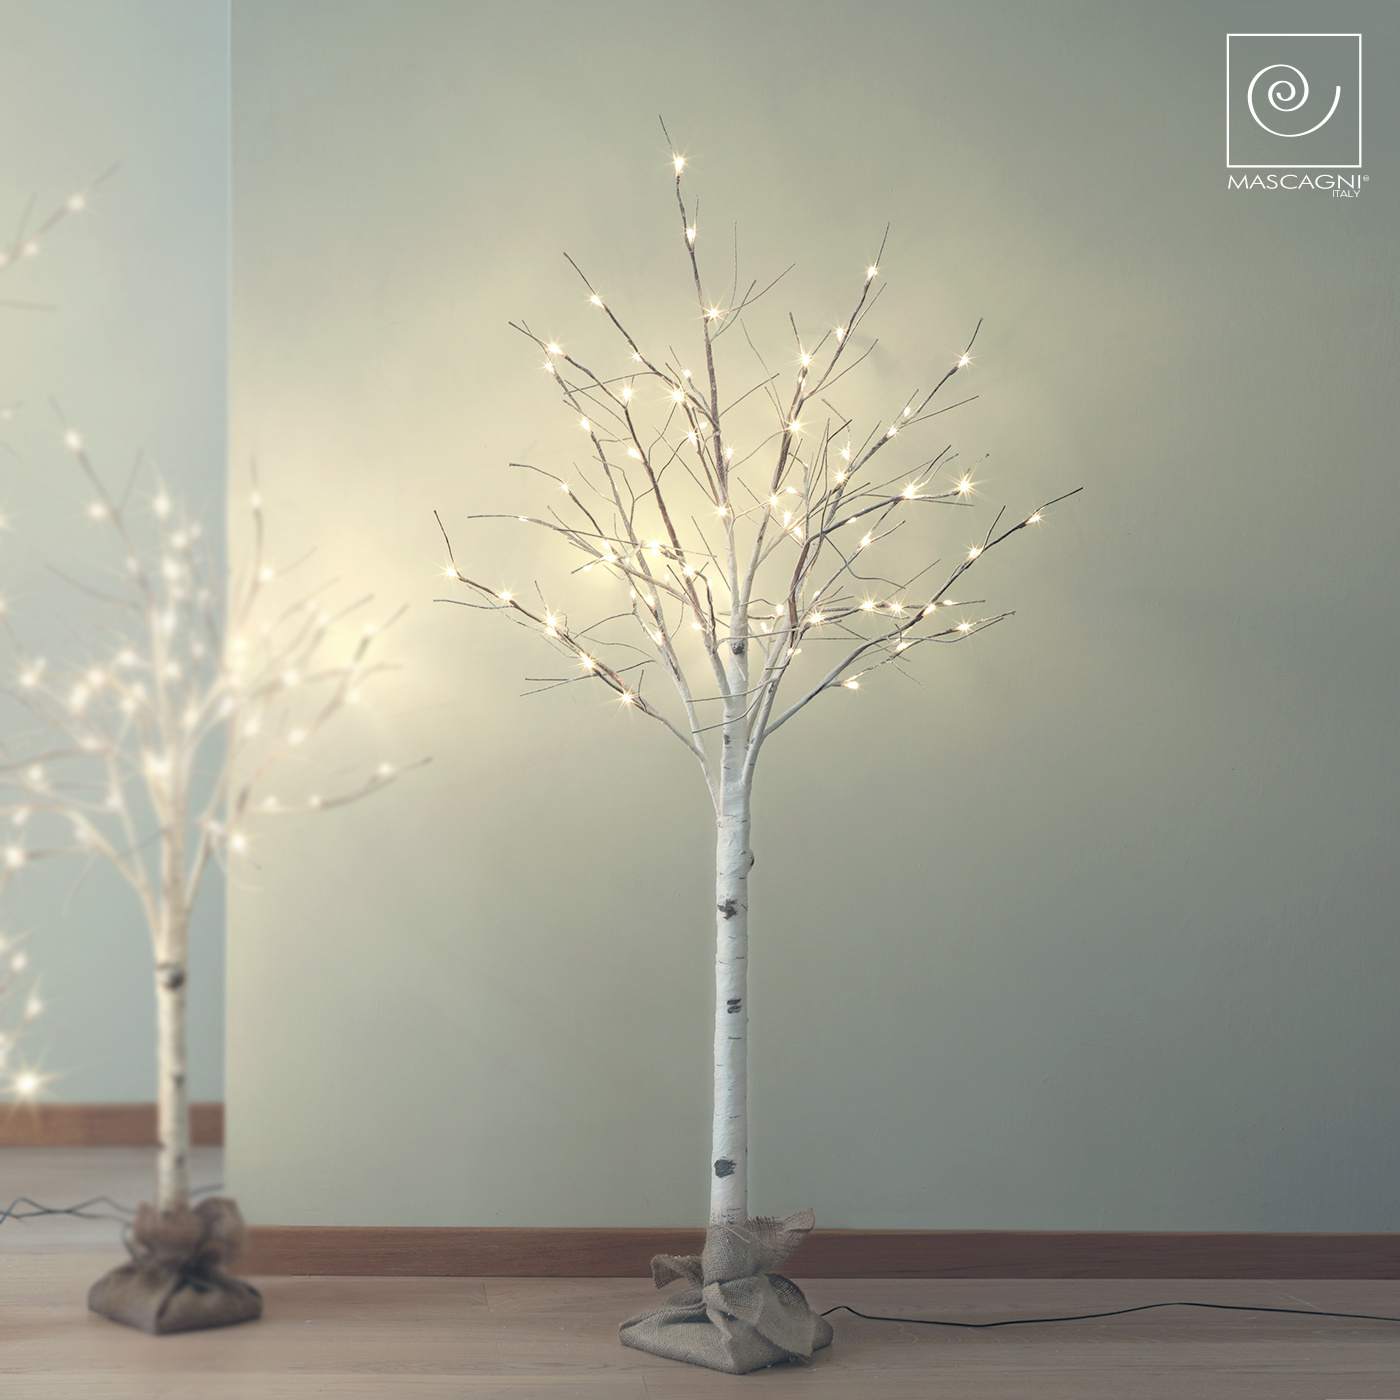 Art Mascagni LED TREE CM.160